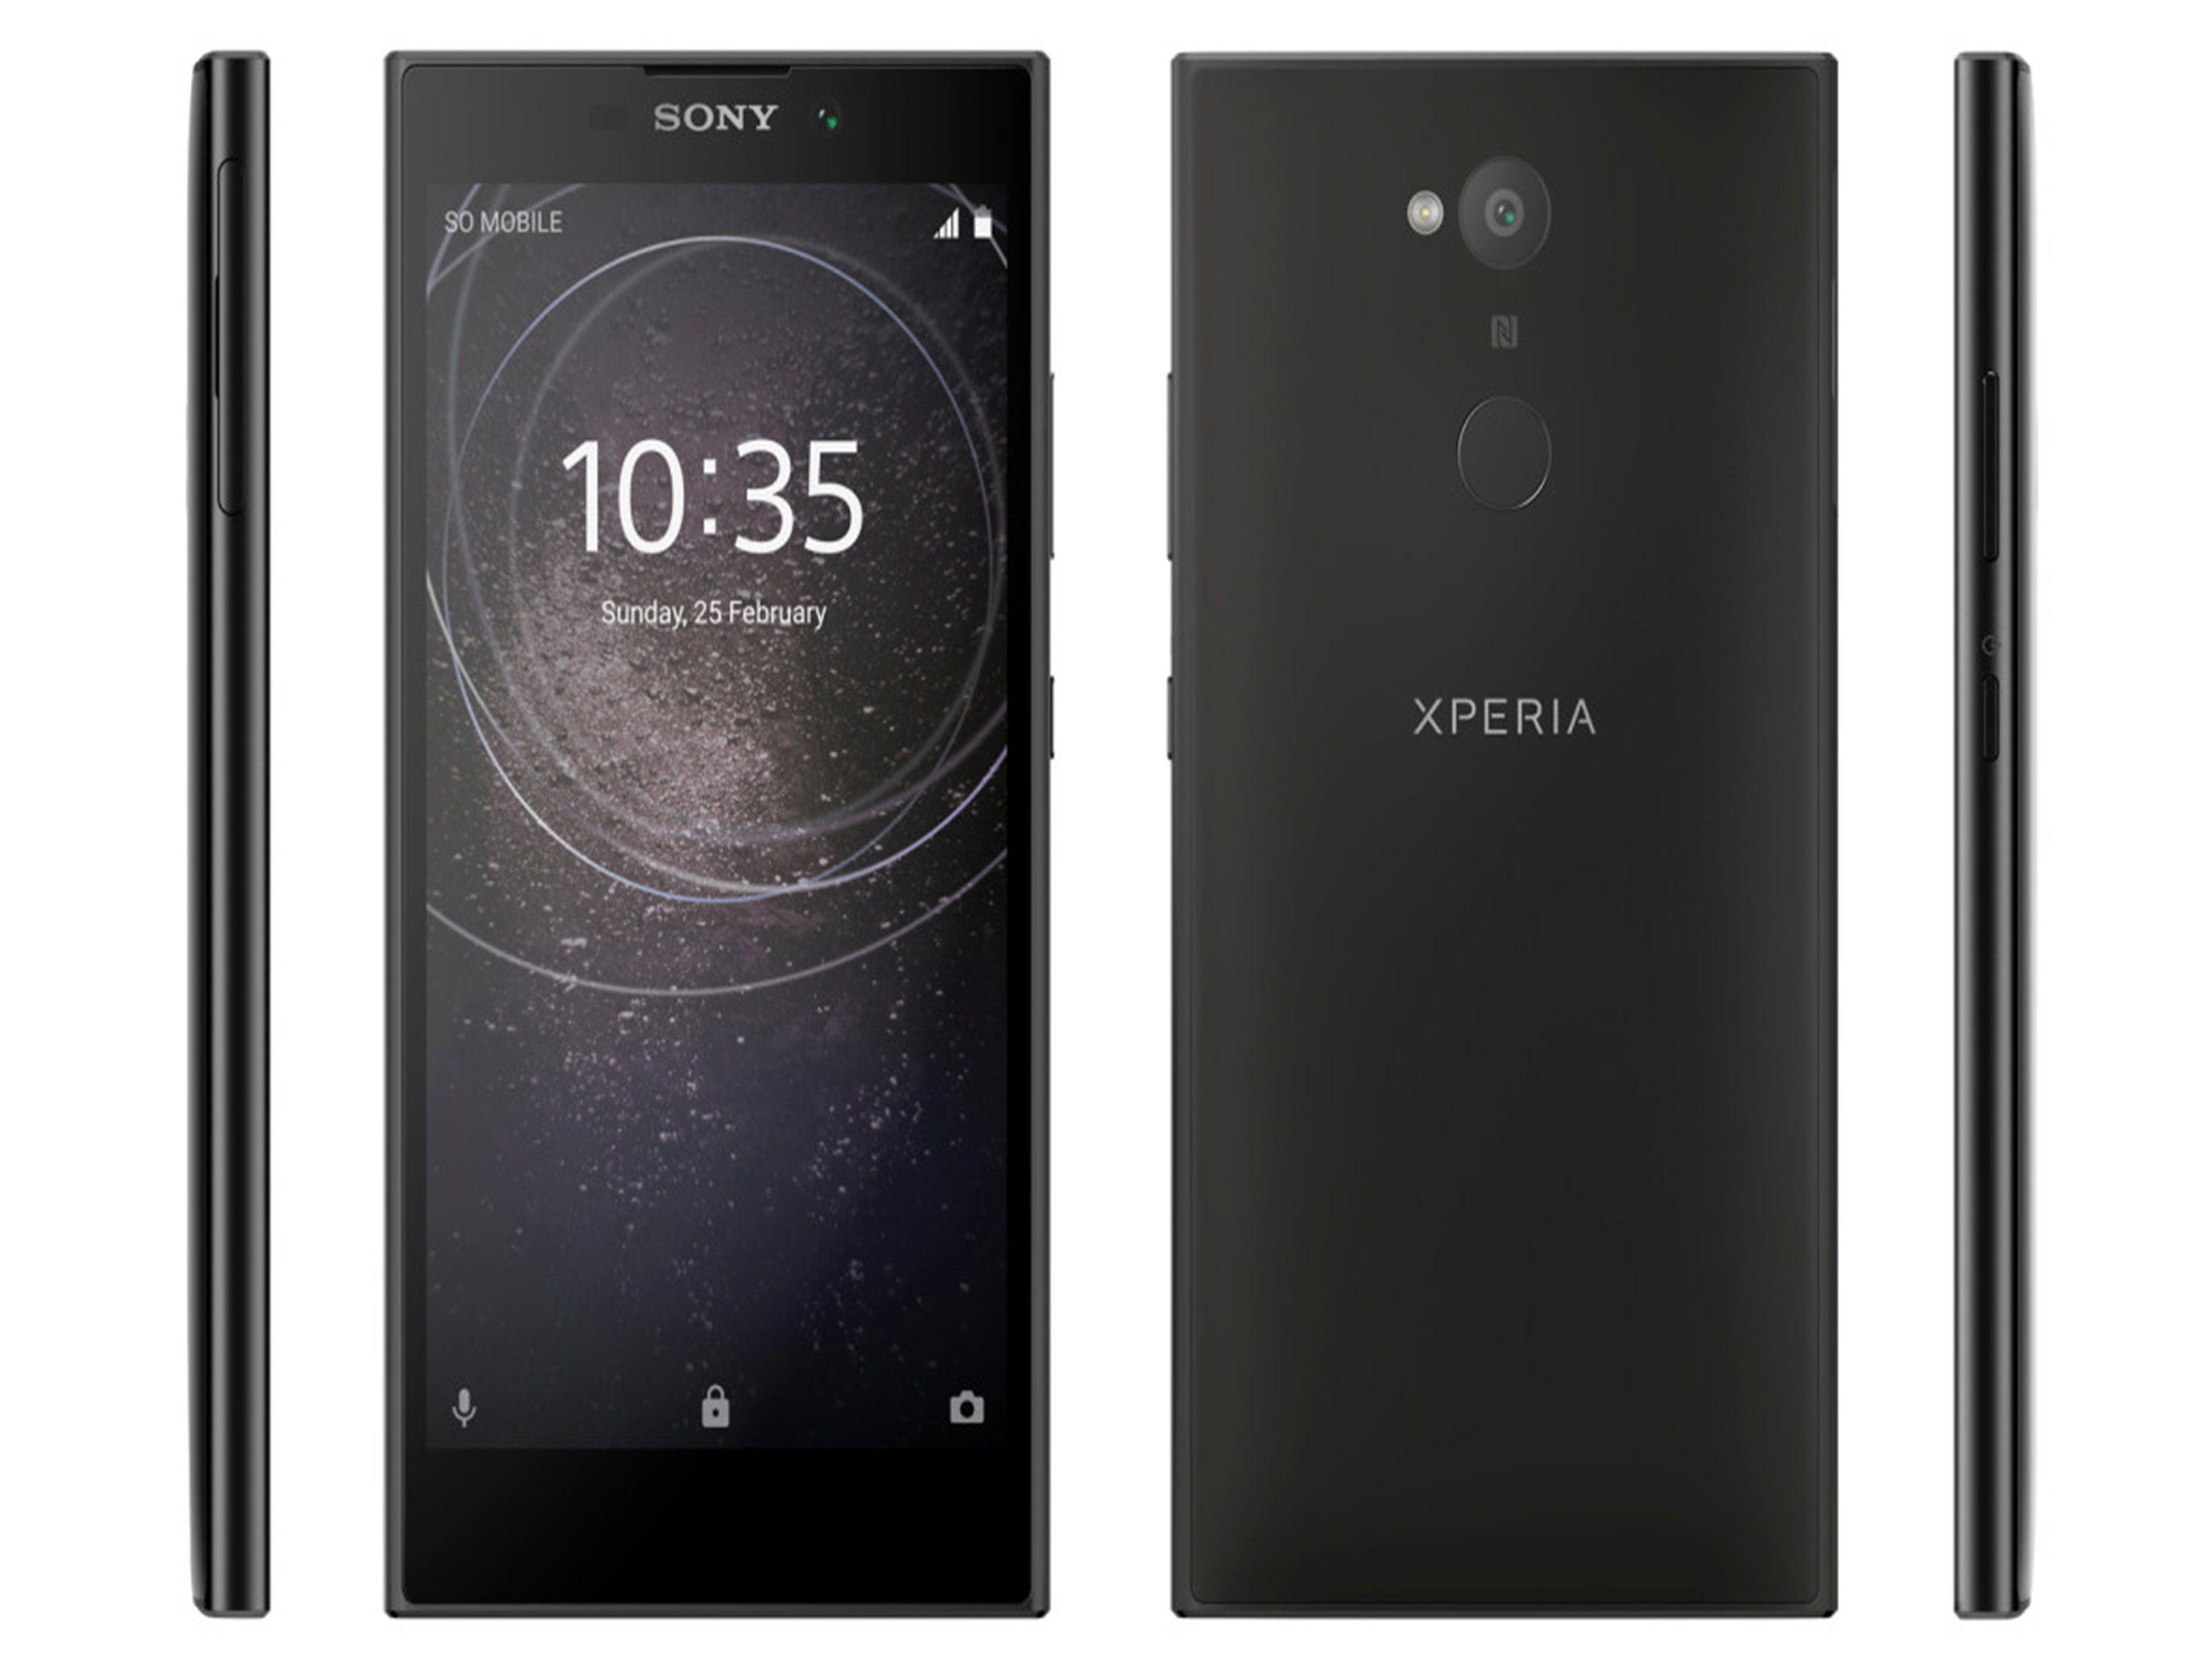 Official render of Sony Xperia L2